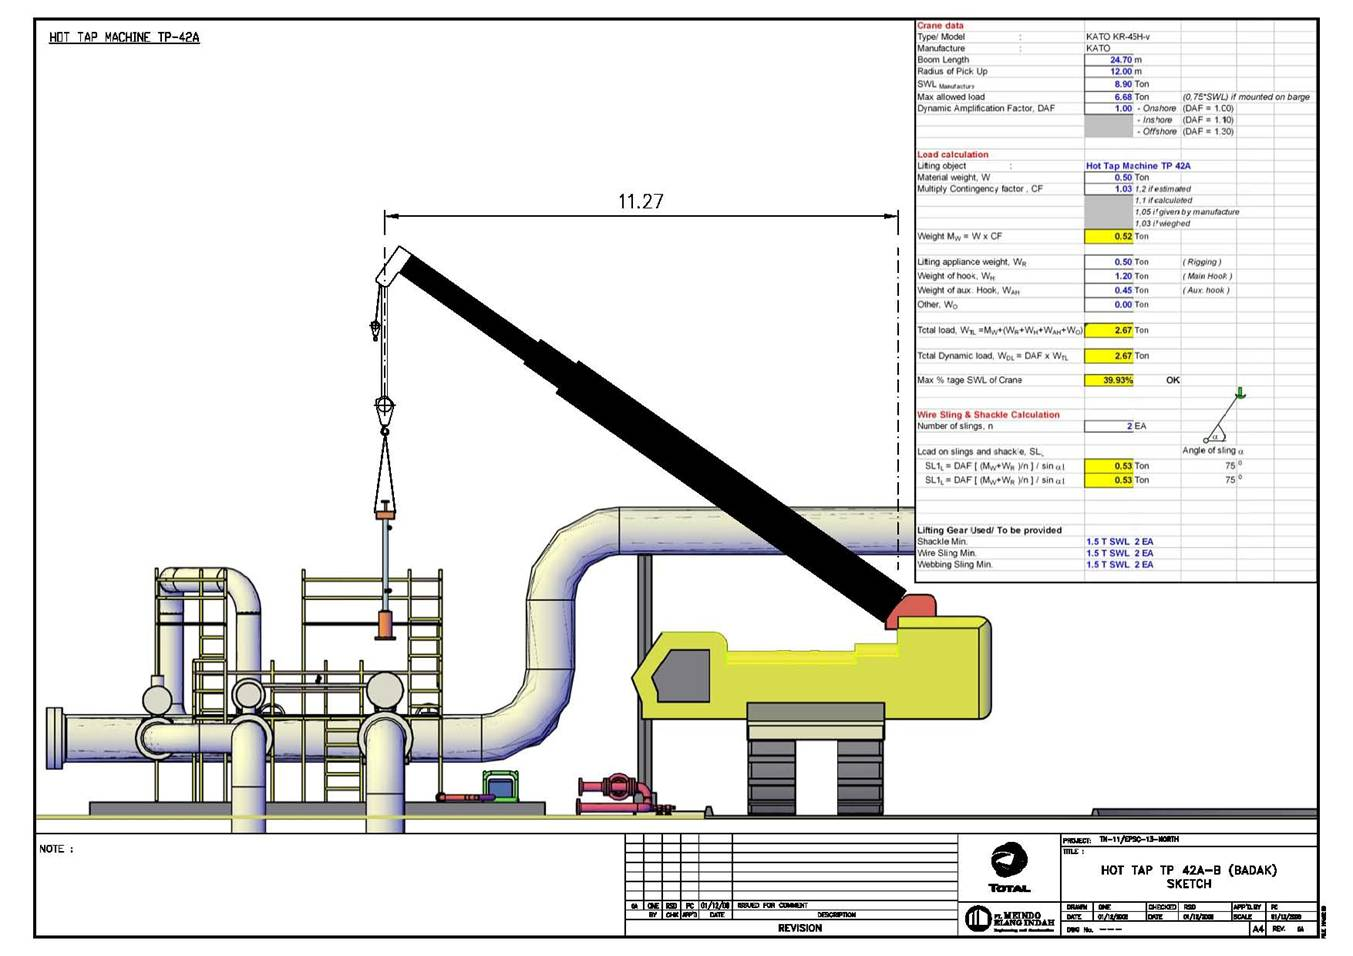 Hot Tap At Total Badak Trf One Way Piping Hydrotest Diagram Lifting Calculation Machine